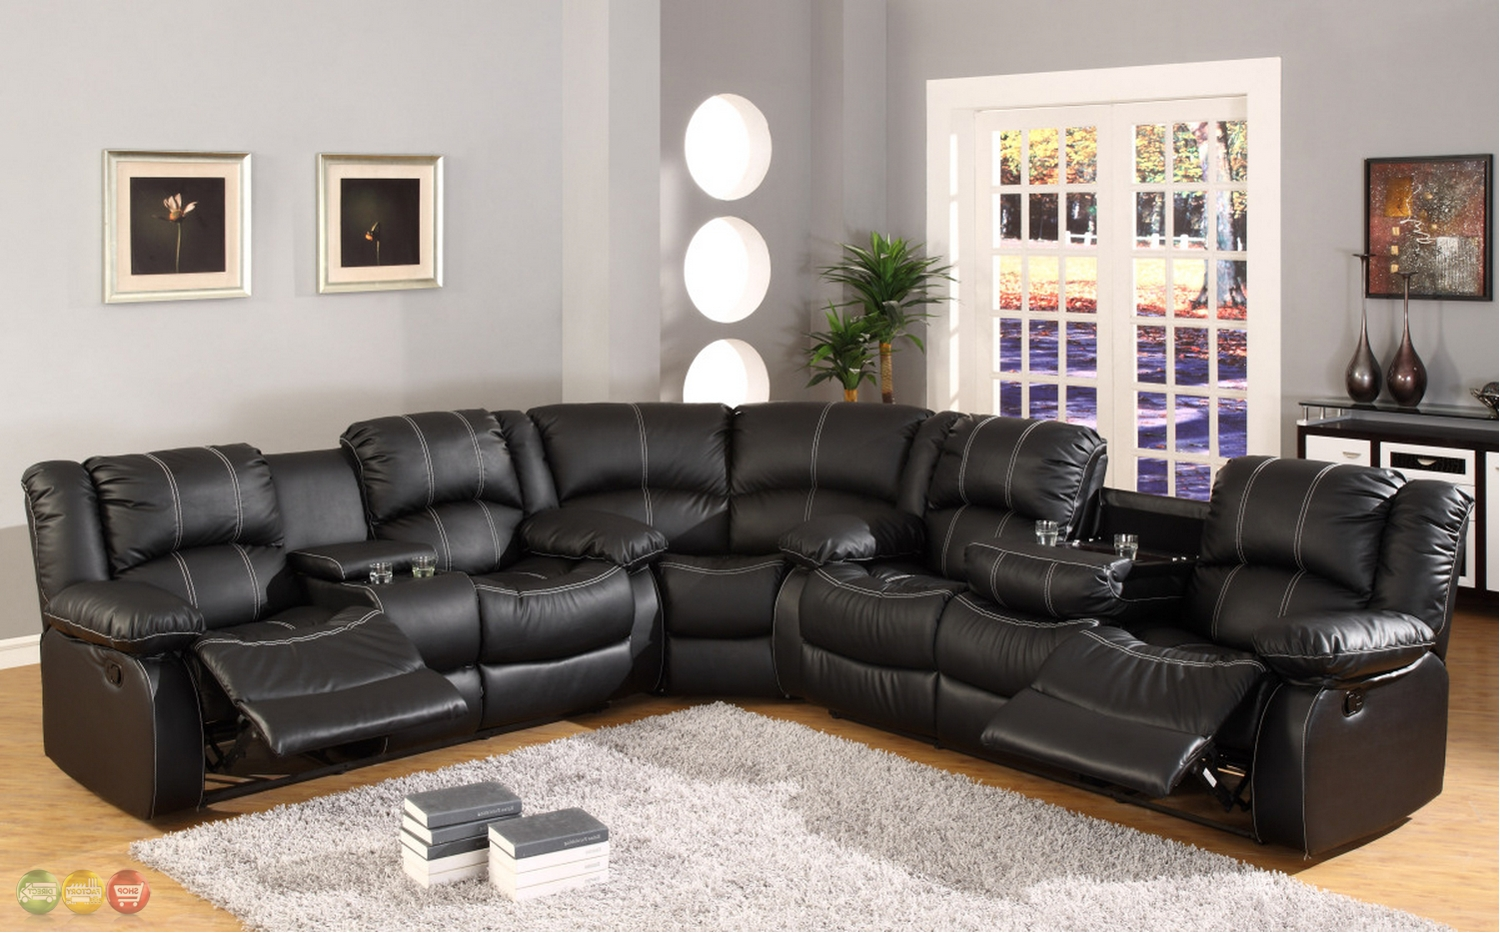 Most Current Faux Leather Sectional Sofas Throughout Black Faux Leather Reclining Motion Sectional Sofa W/ Storage (View 6 of 20)